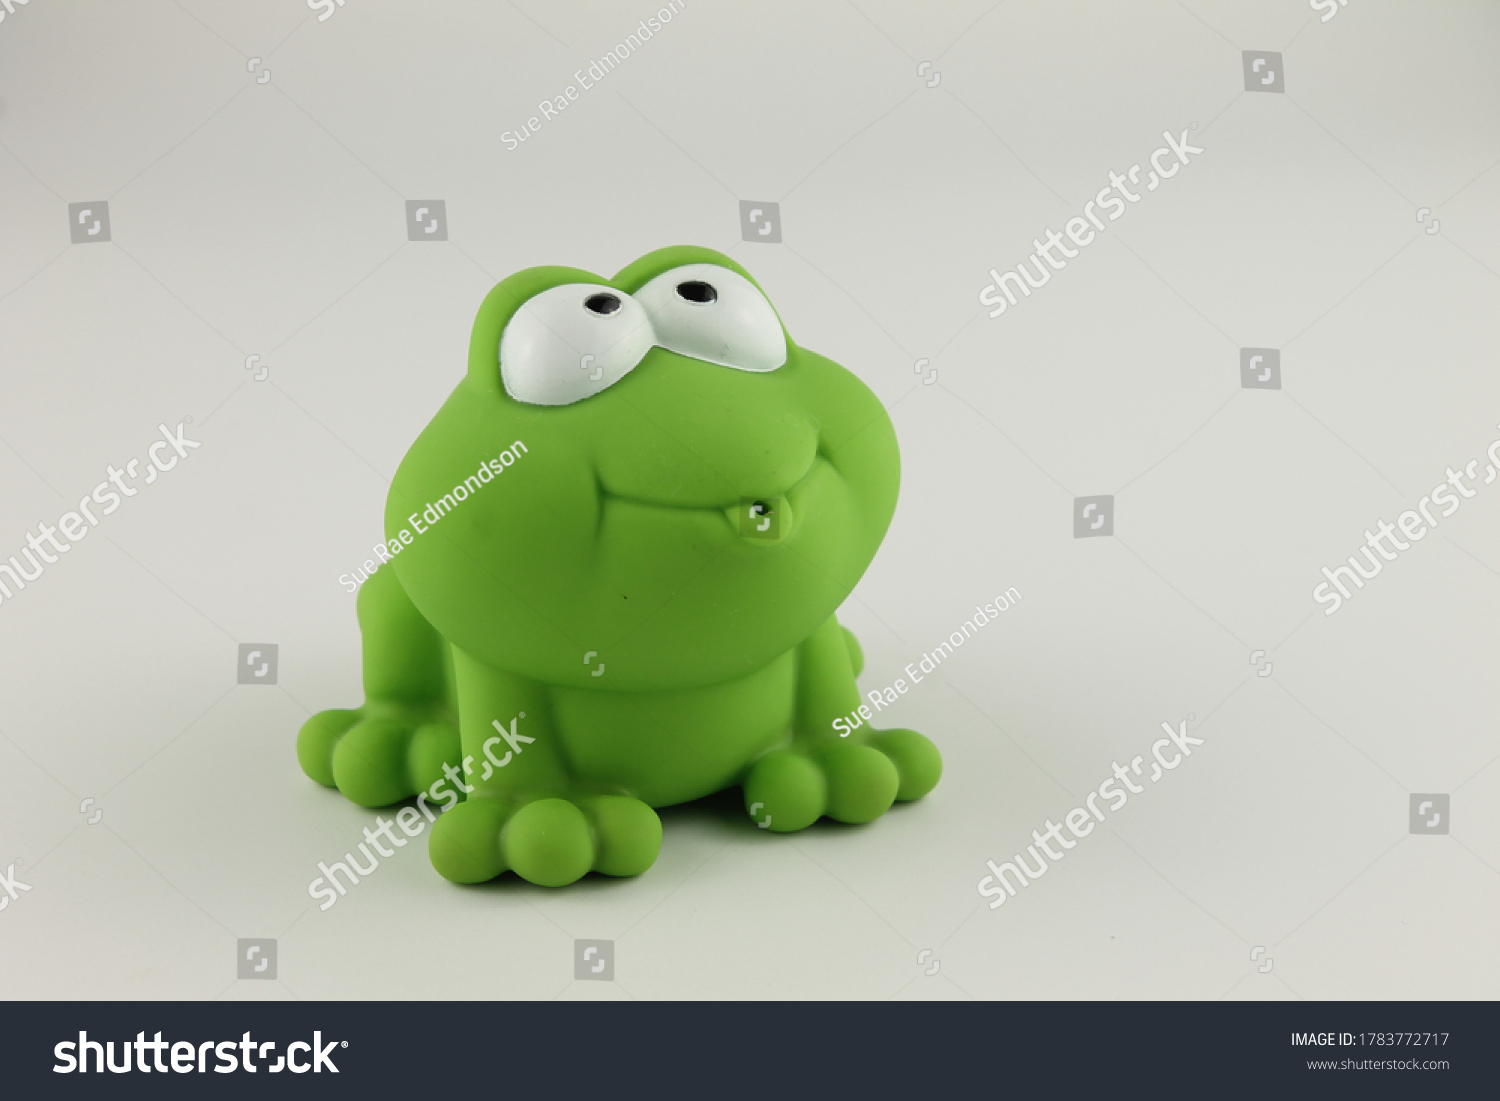 stock-photo-green-rubber-toy-frog-isolat